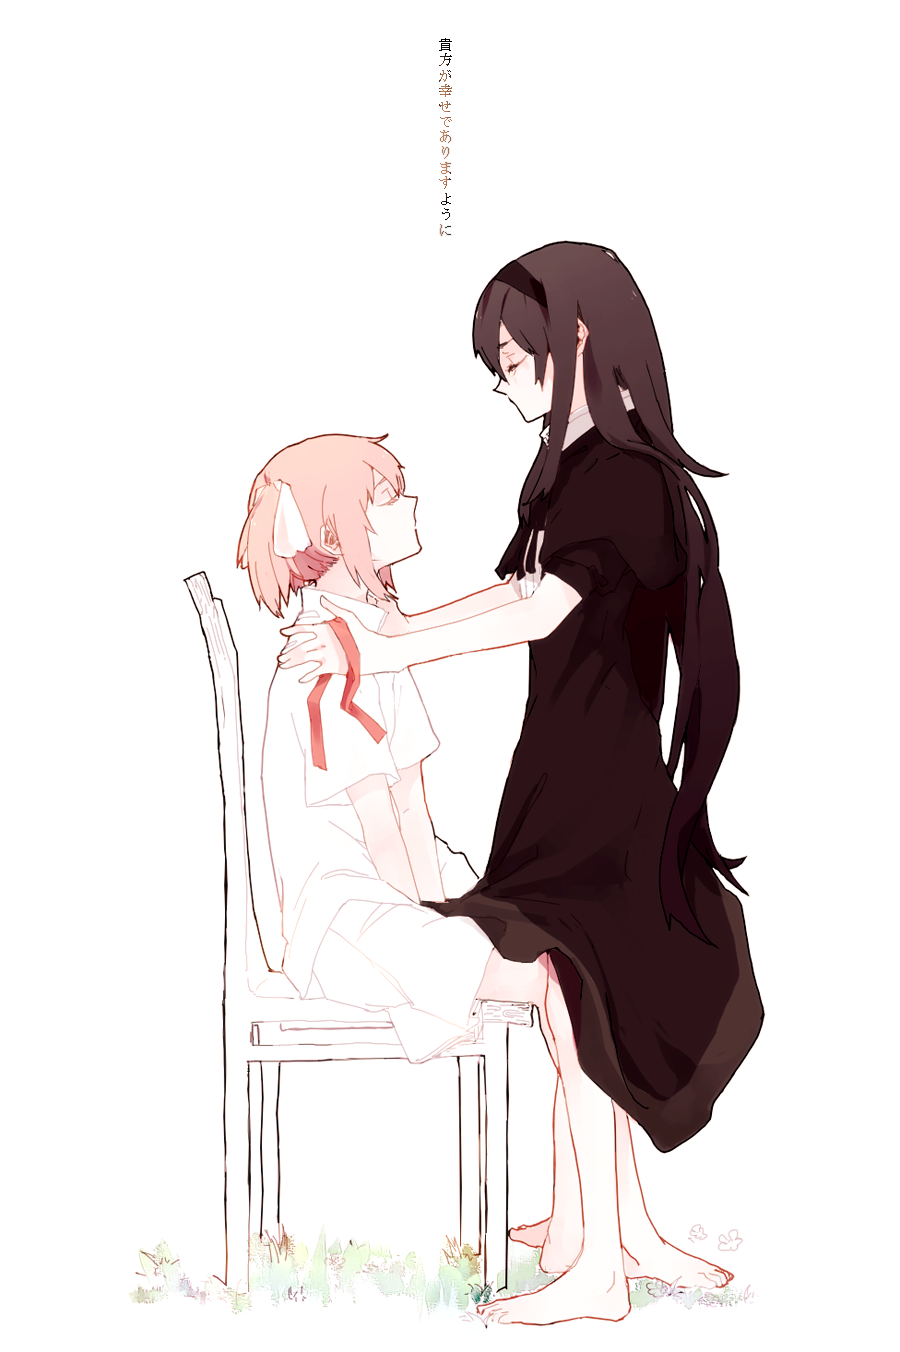 2girls akemi_homura arm_support bare_legs barefoot between_legs black_capelet black_dress black_hair black_hairband capelet center_frills chair closed_eyes crying dress expressionless eyelashes fabric face-to-face flat_chest frills from_side frown full_body funeral_dress grass hair_ribbon hairband hand_between_legs hands_on_another's_shoulders hanyae high_collar highres holding homulilly jitome kaname_madoka long_hair mahou_shoujo_madoka_magica mahou_shoujo_madoka_magica_movie multiple_girls no_mouth on_chair pink_hair profile ribbon sad shirt short_sleeves short_twintails sidelocks simple_background sitting skirt standing straight_hair tears translation_request twintails very_long_hair white_background white_ribbon white_shirt white_skirt